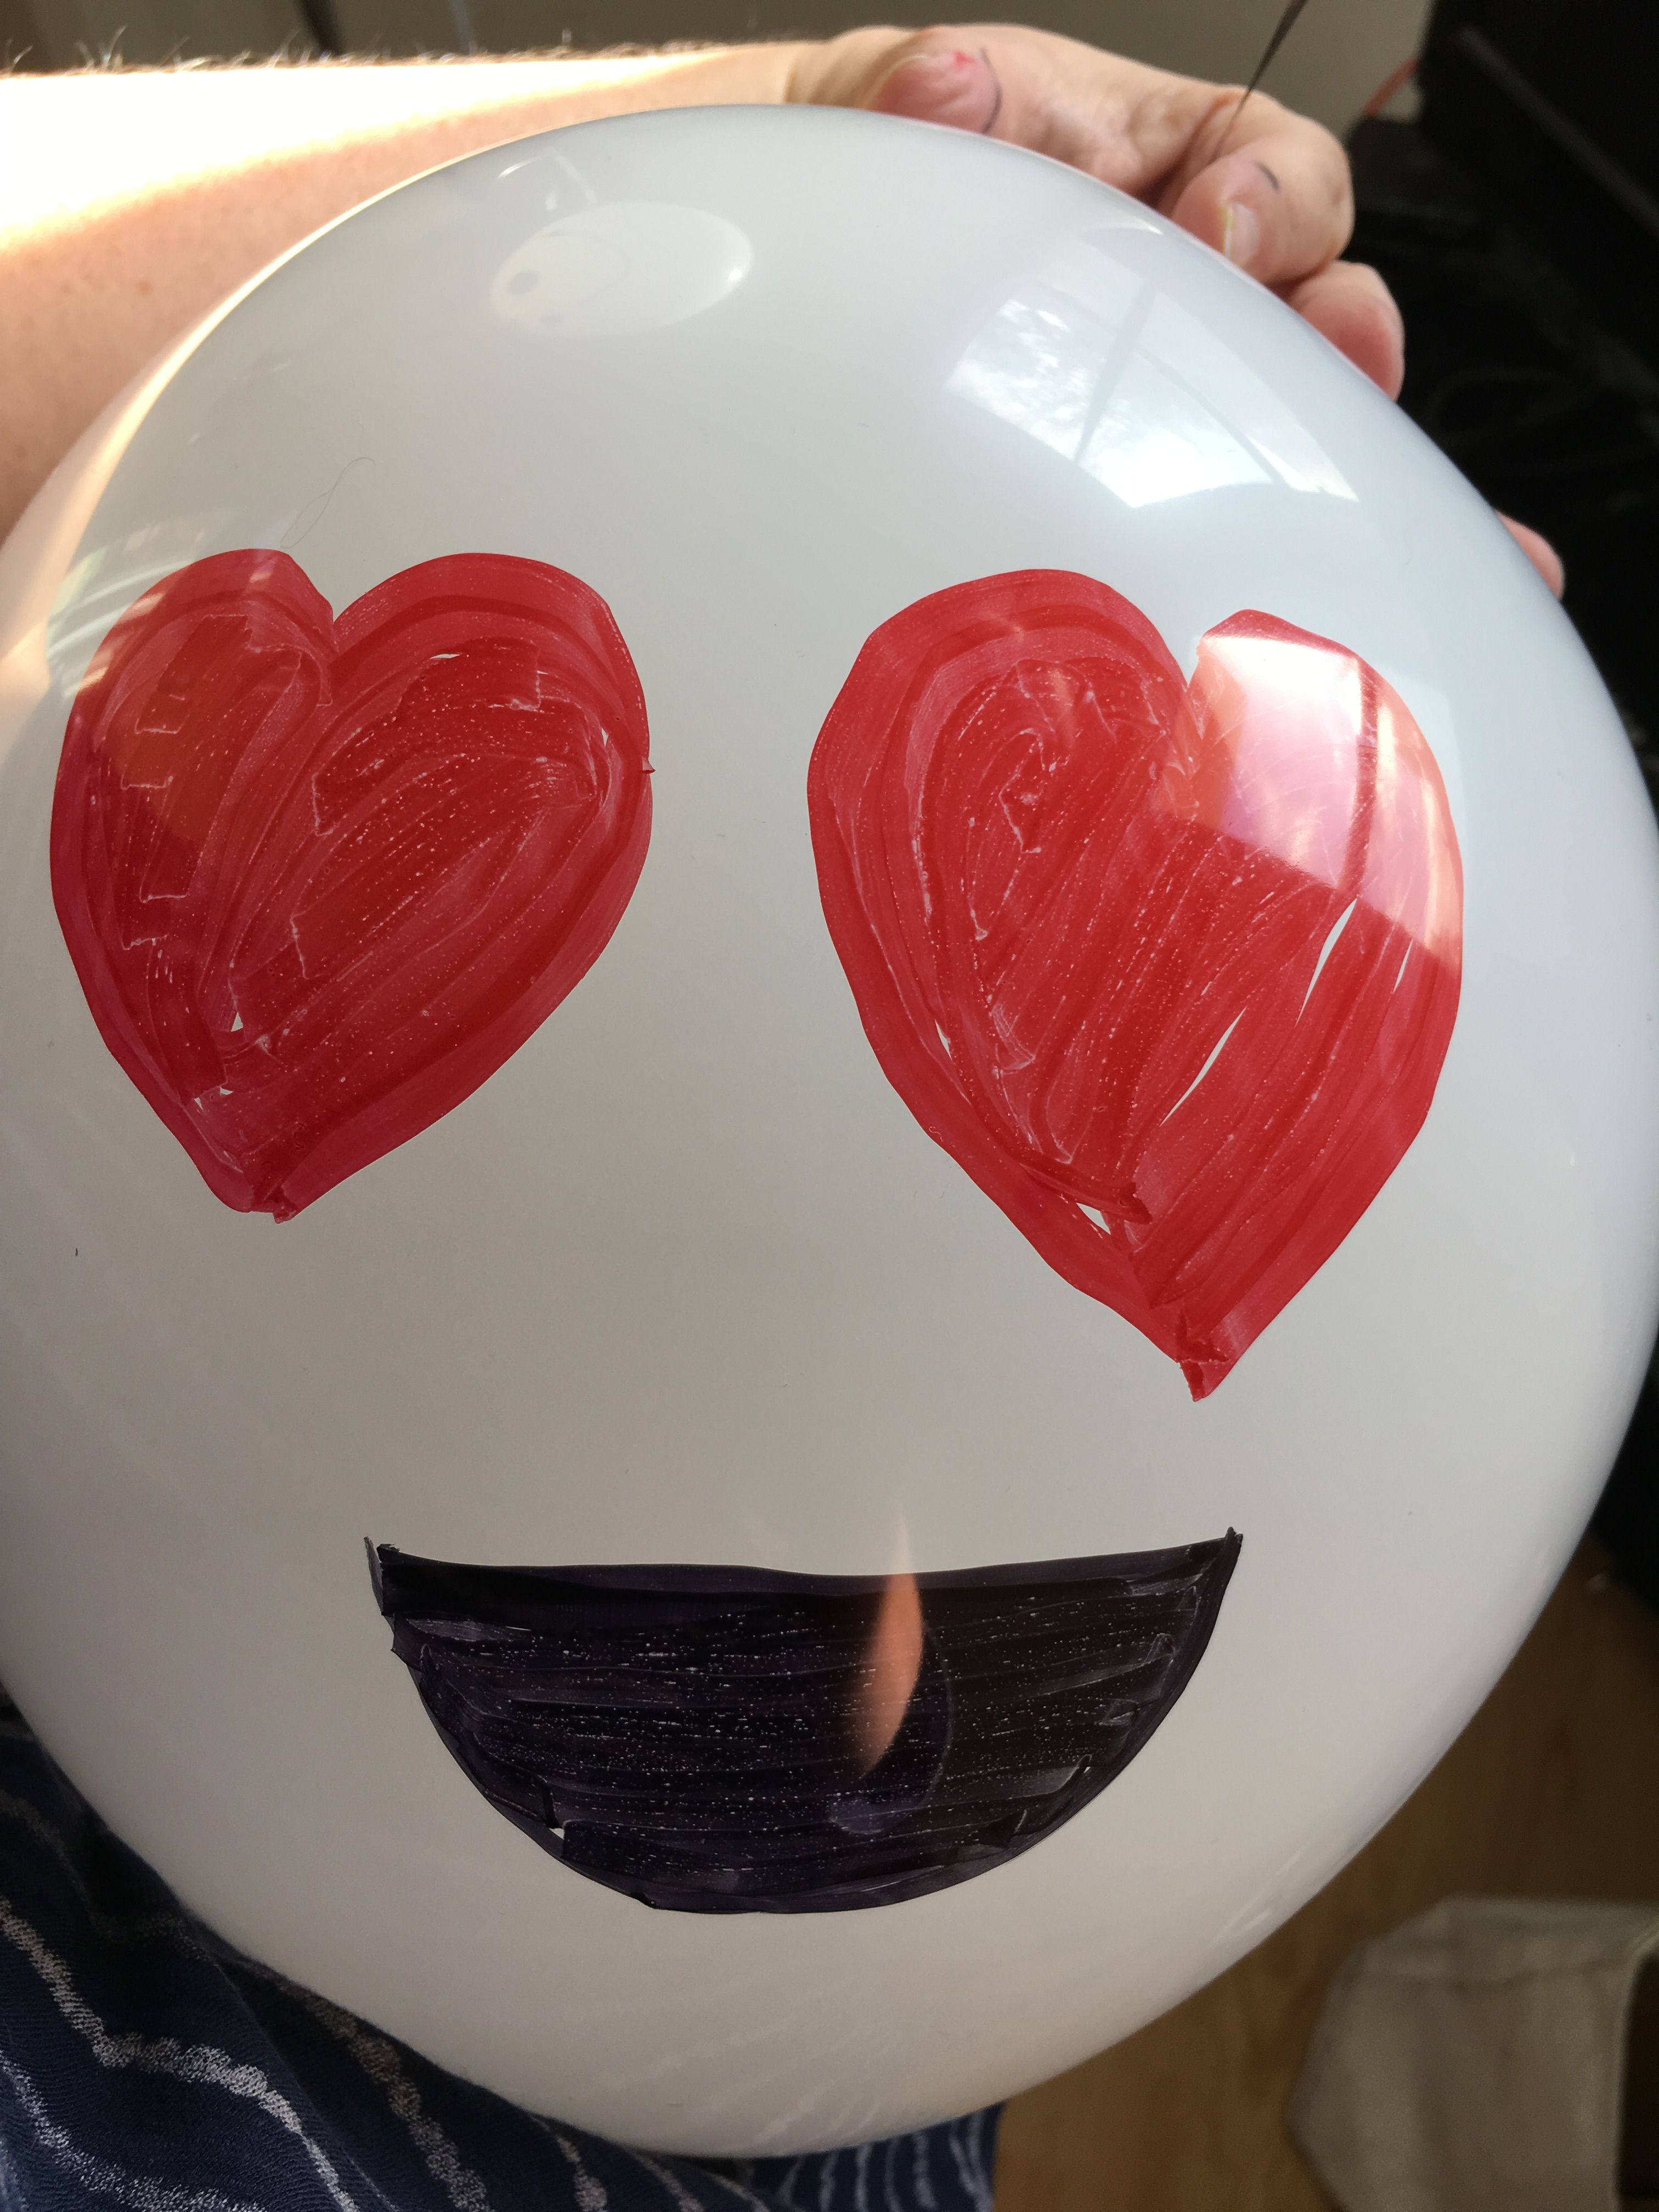 Halloween ghost heart emoji balloon Halloween ghost crafts - Halloween Ghost Decorations